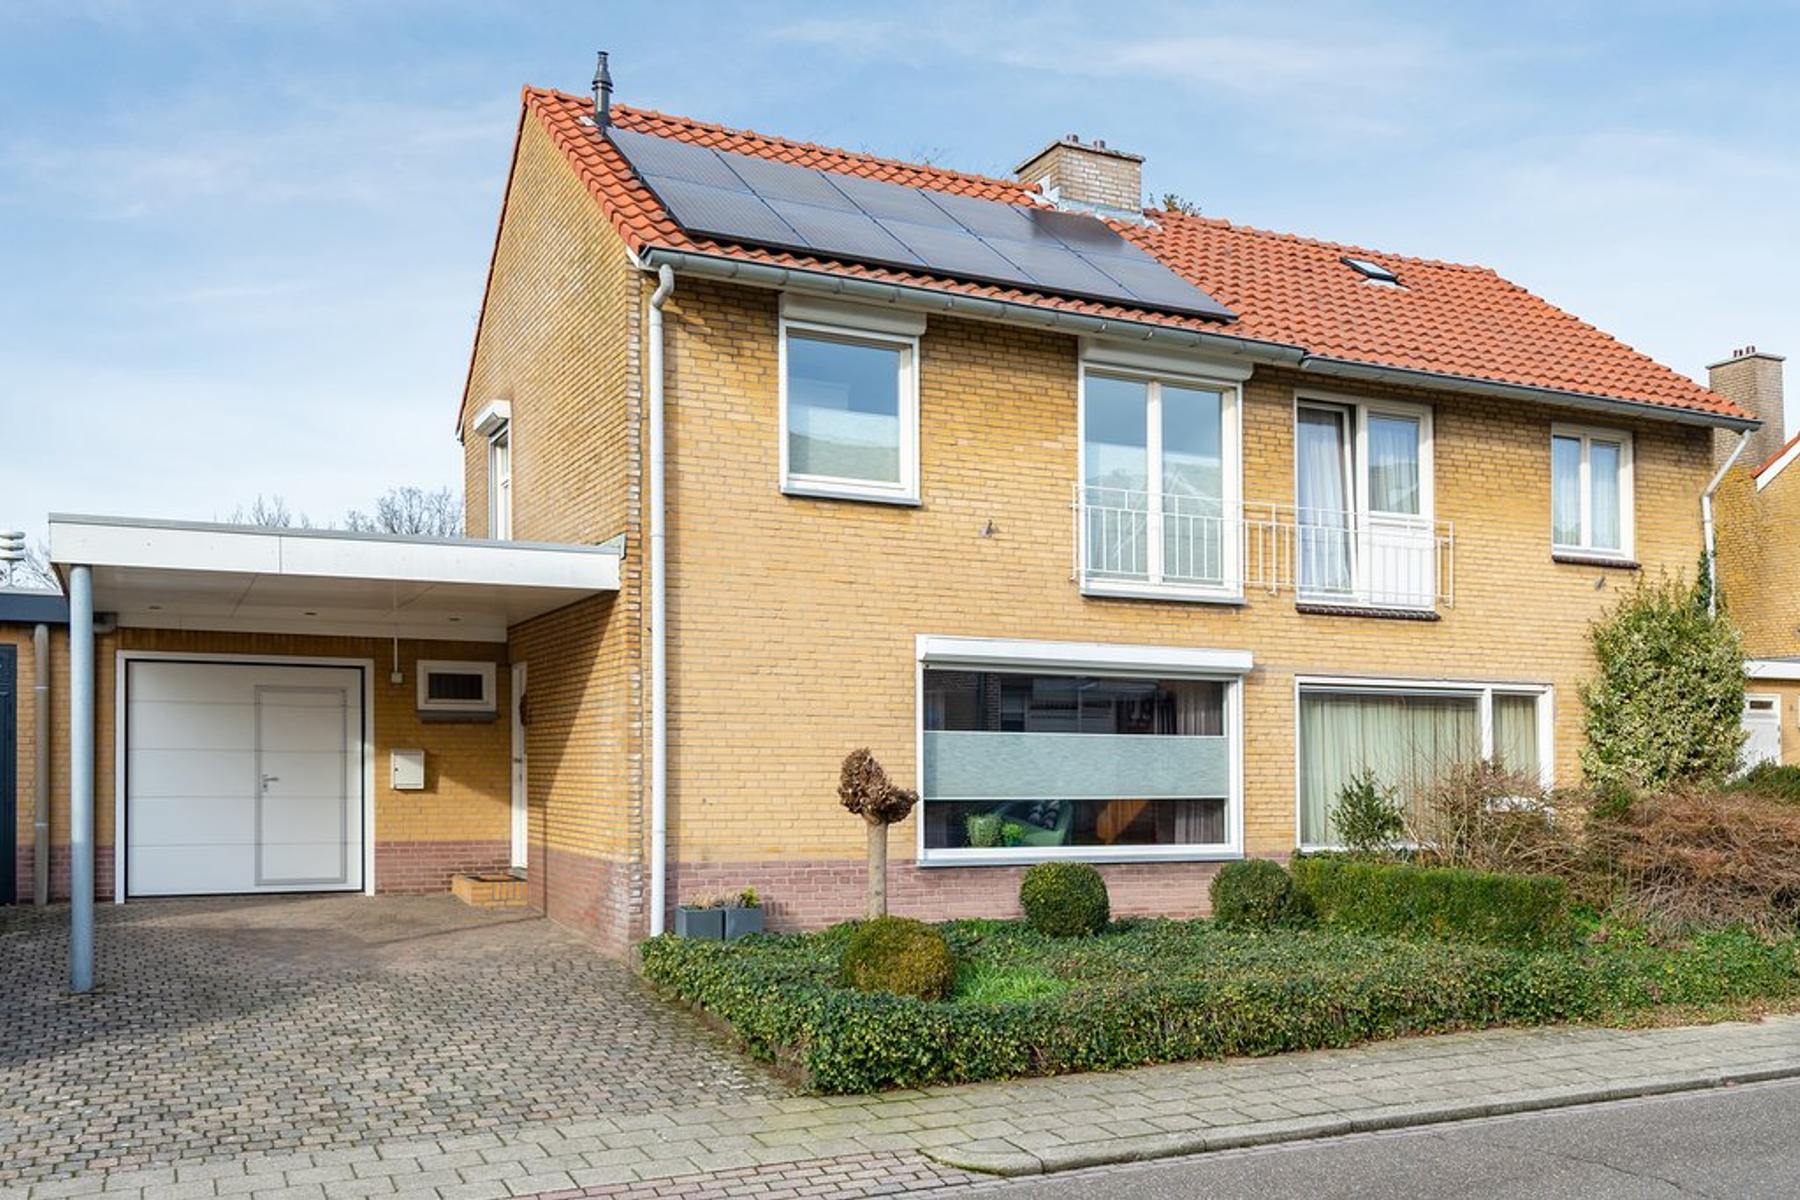 Van Plettenbergstraat 5 in Margraten 6269 CT